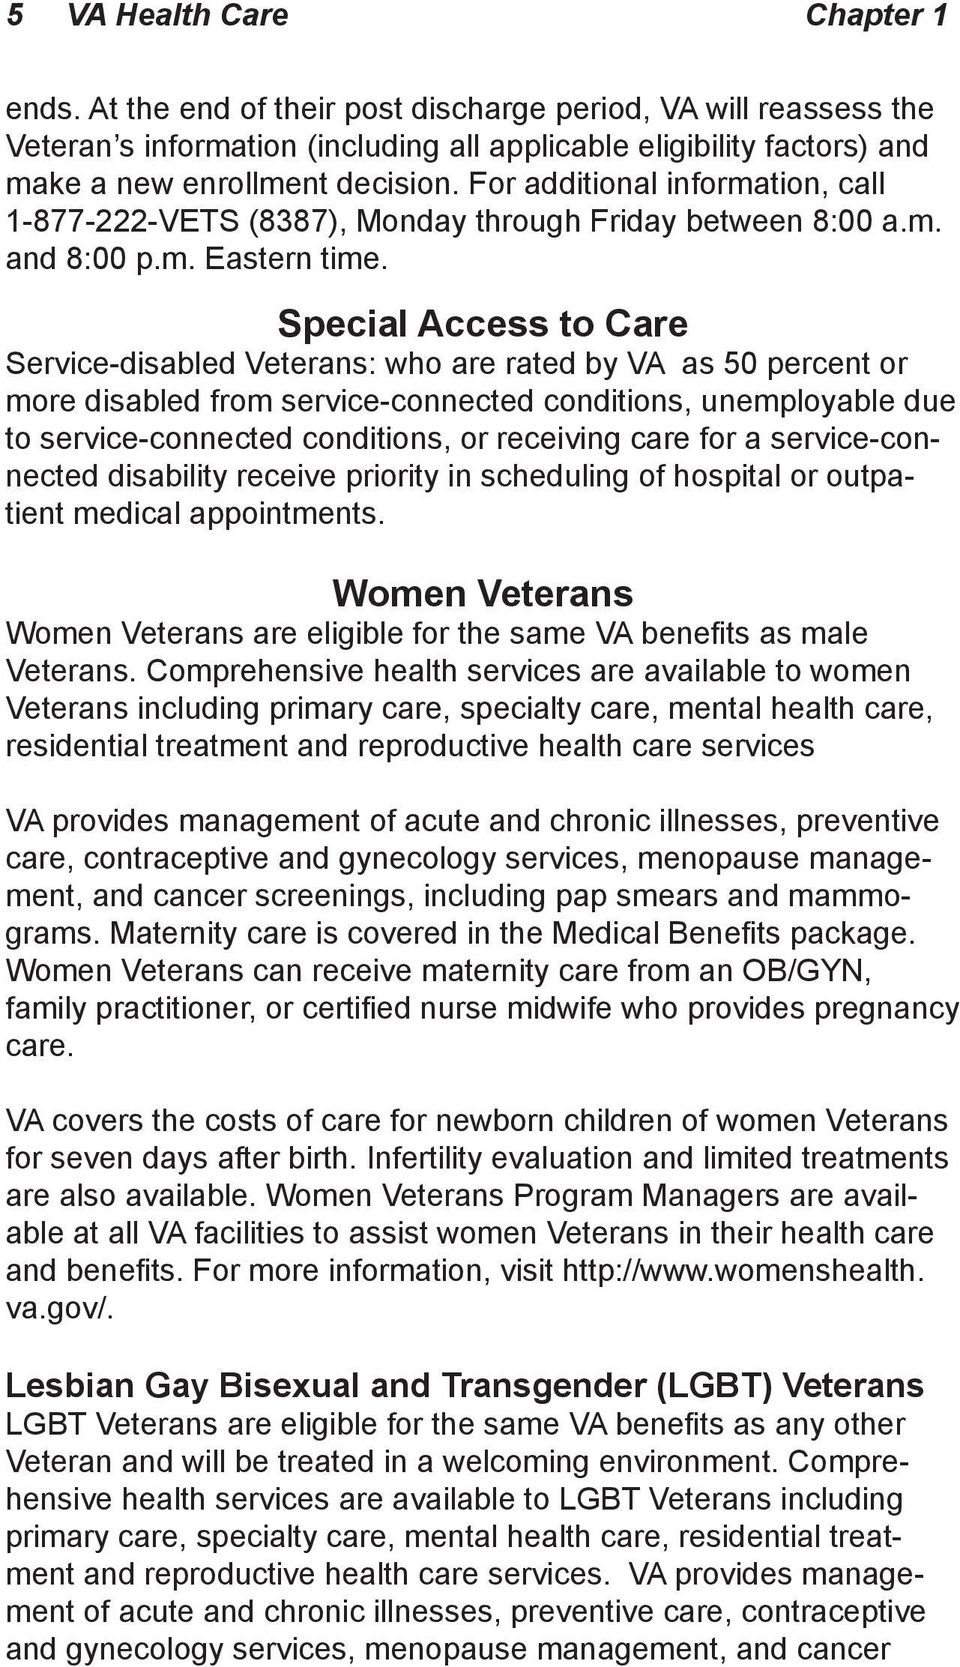 Federal Benefits for Veterans, Dependents and Survivors - PDF